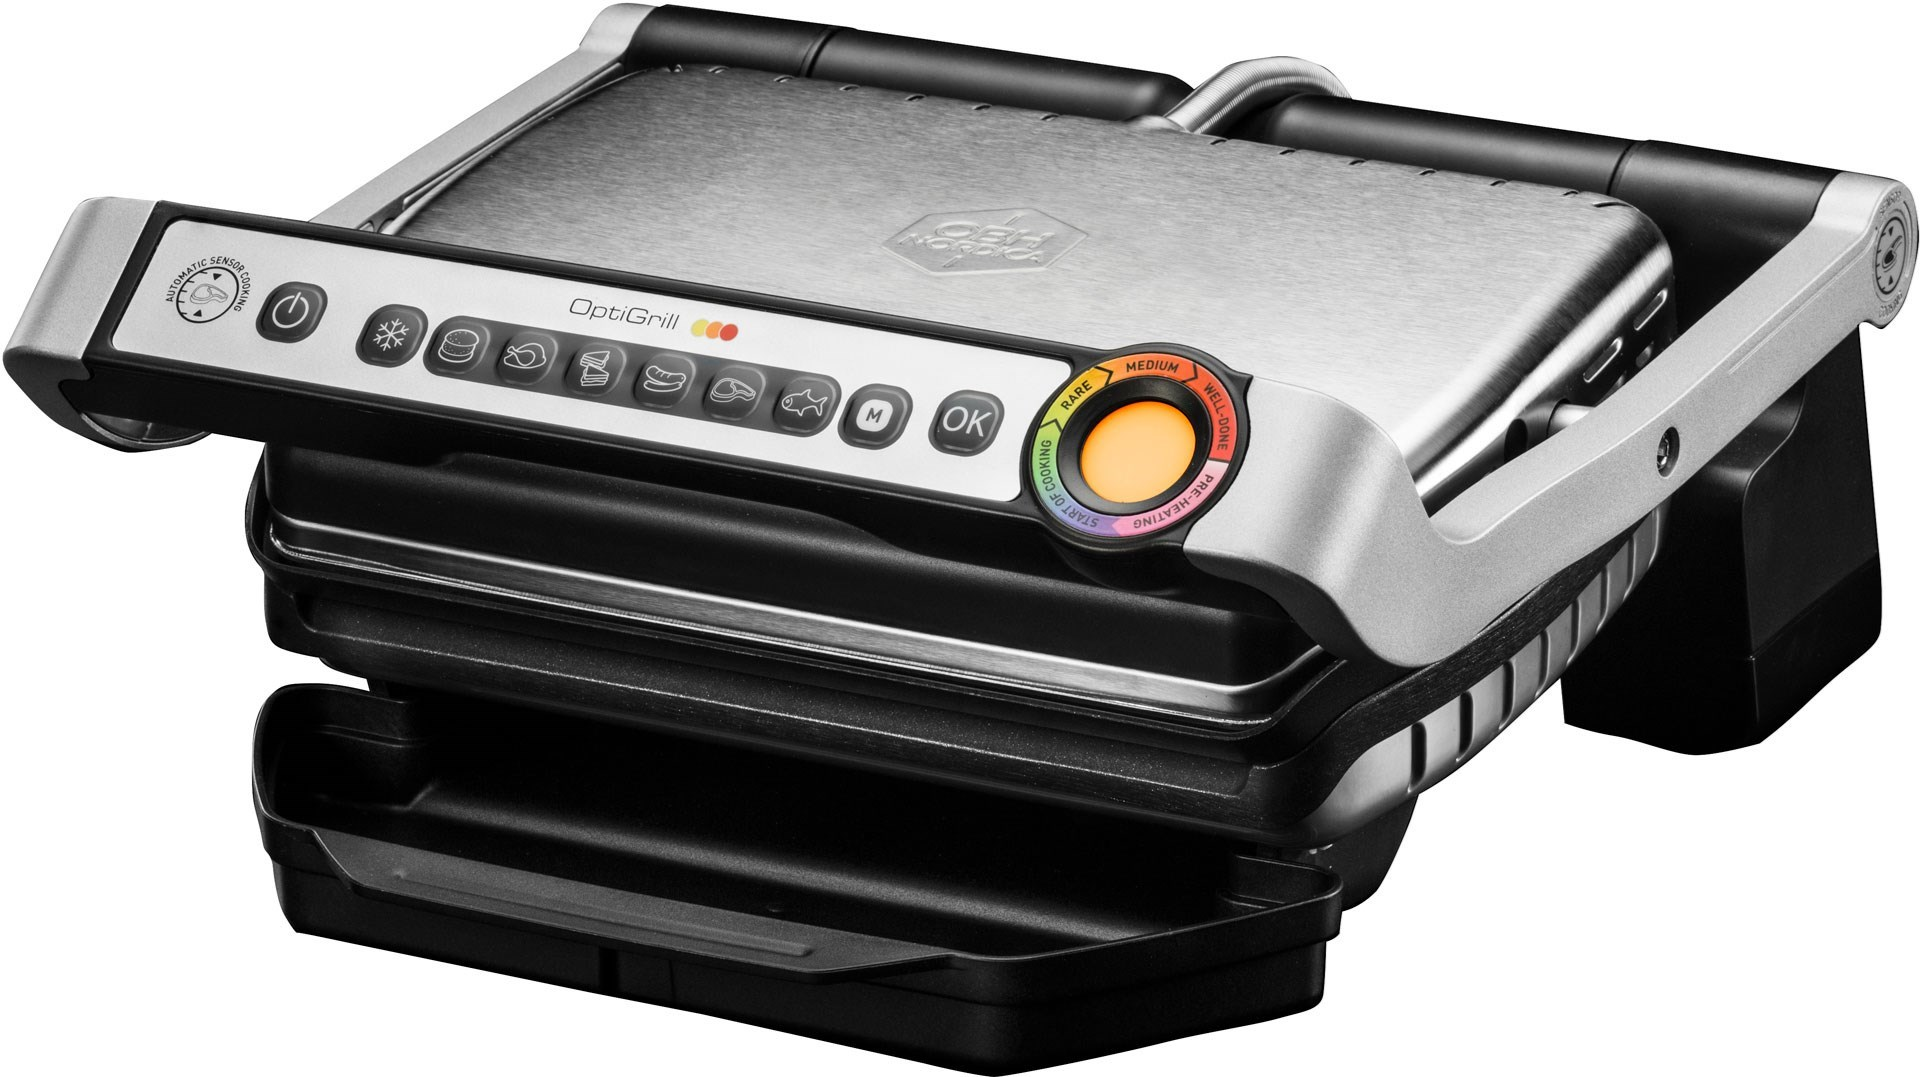 OBH Nordica Optigrill - Smart kontaktgrill med automatiska program